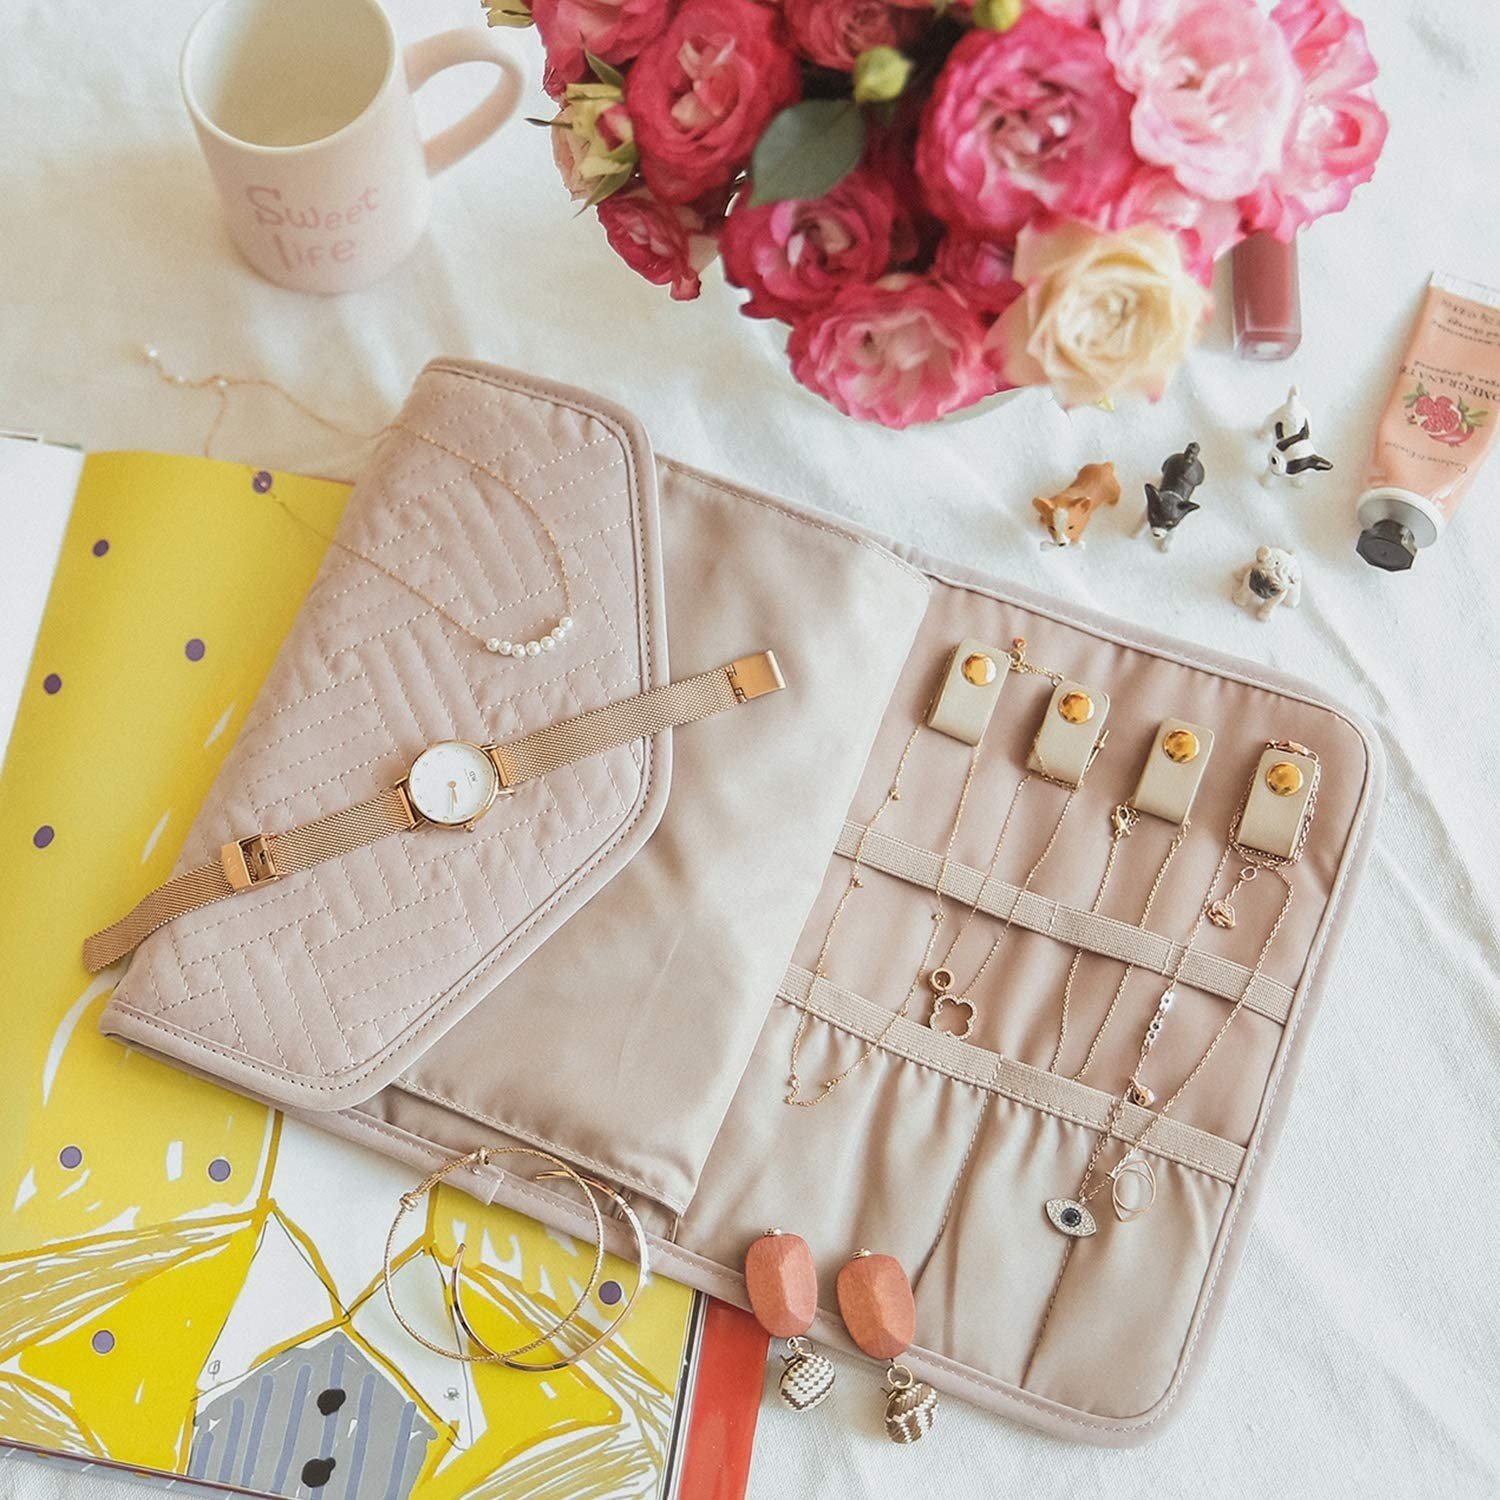 The light pink  fabric case laid out flat with jewelry secured in it